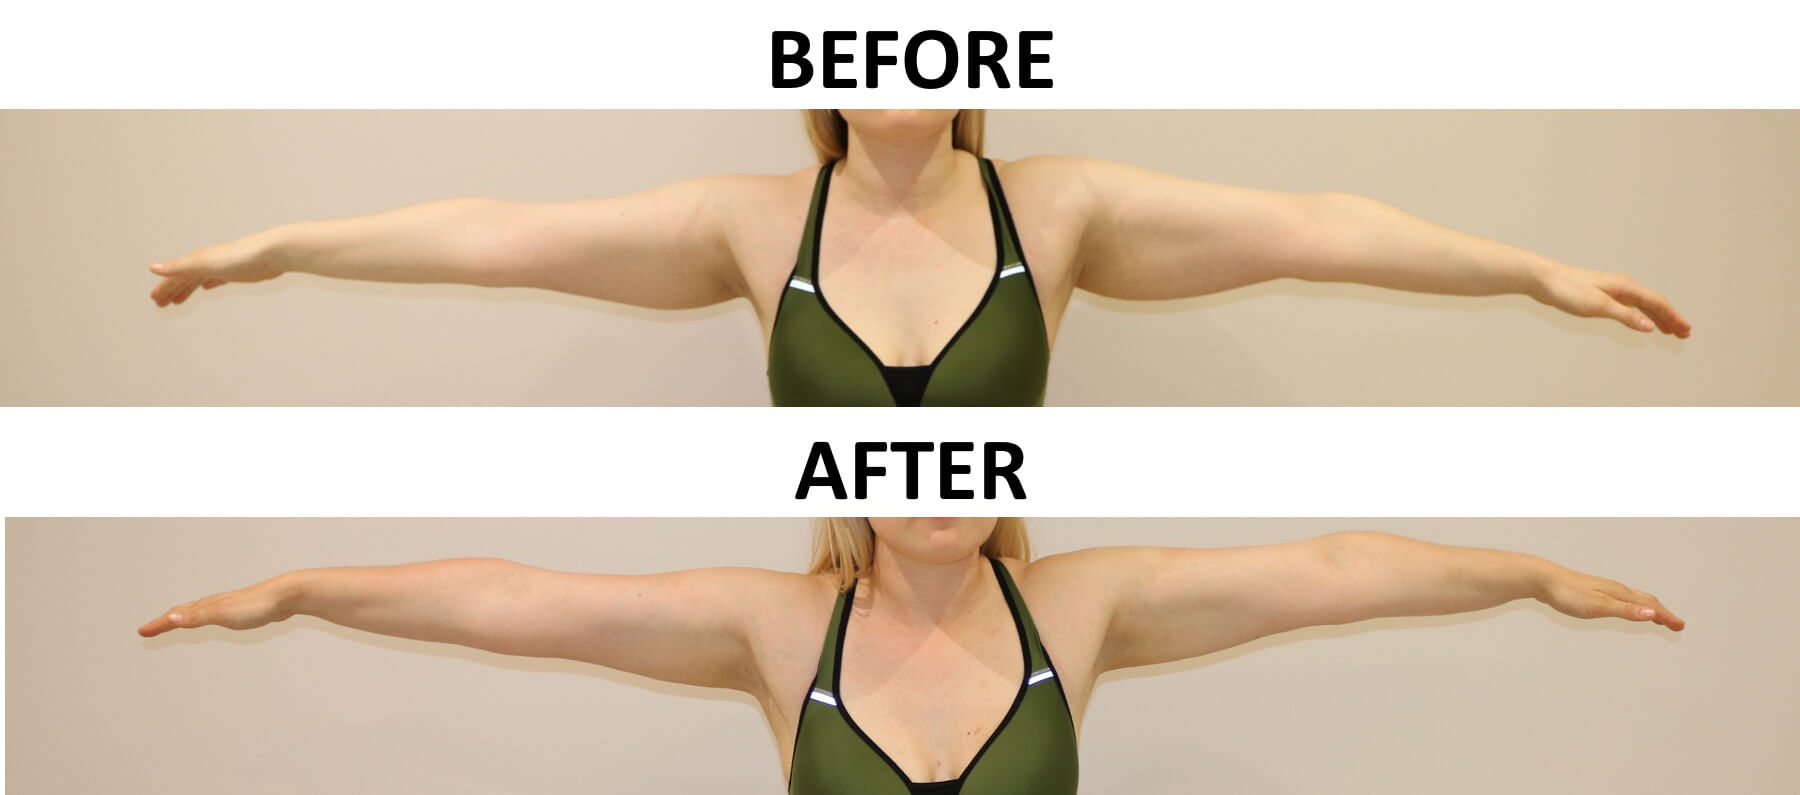 Arm liposuction before and after